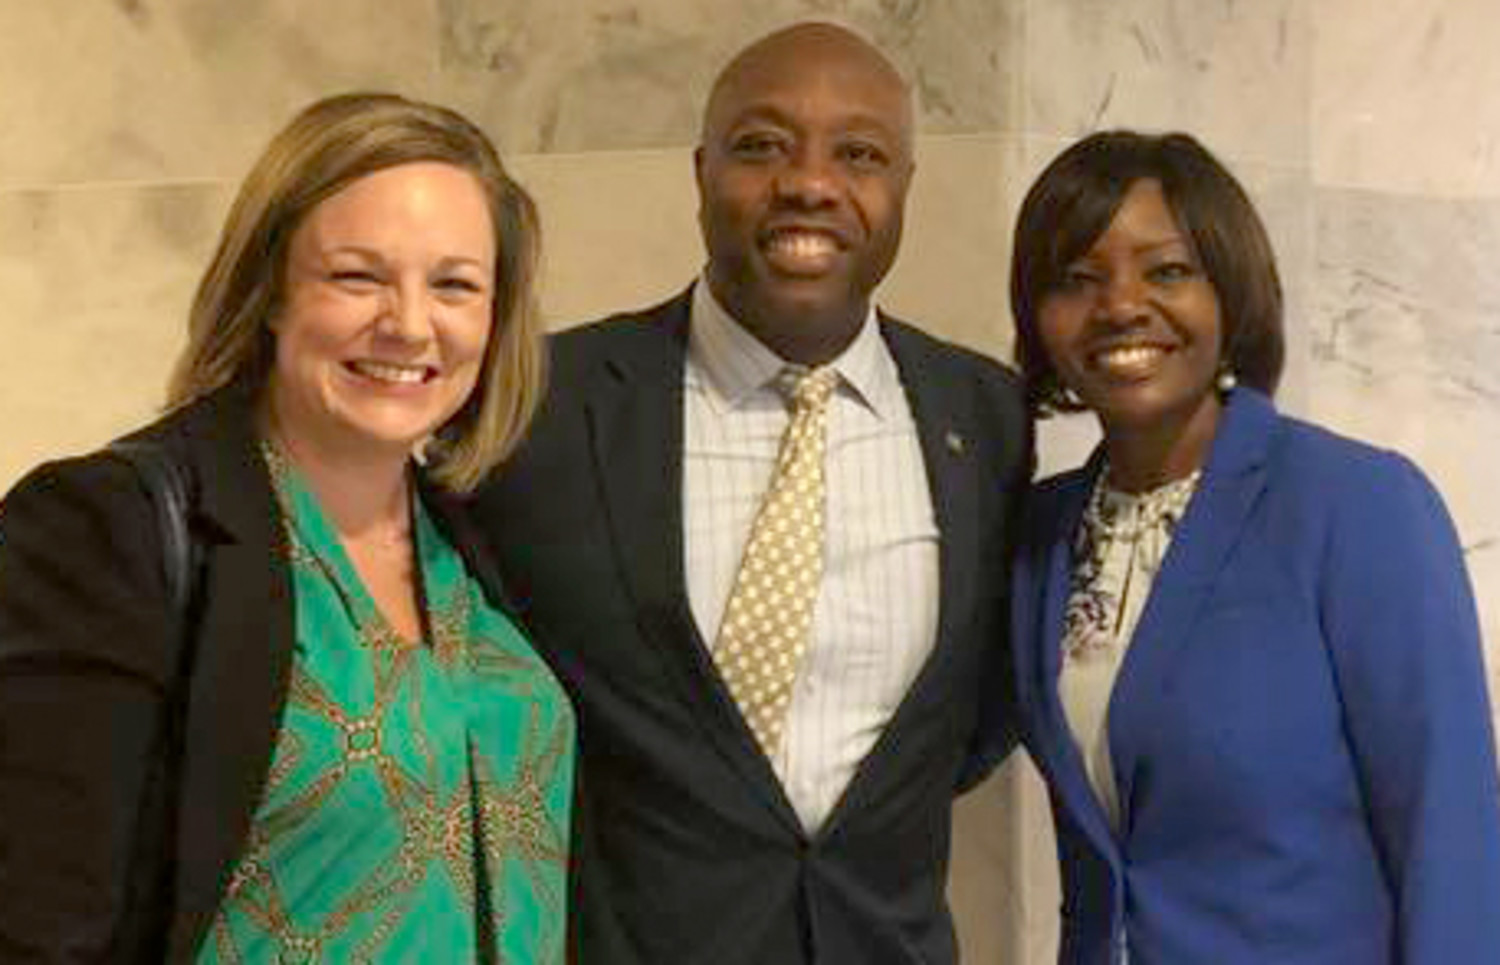 Cutline: U.S. Sen. Tim Scott meets with Tiffany Straus, left, HopeHealth Director of Communications, and Kimberly O. Johnson, right, Director of Legislative Affairs, during their recent visit to Washington D.C. with the South Carolina Primary Health Care Association. Scott is one of nine South Carolina delegation representatives the SCPHCA met with to discuss the importance of health centers and to bring attention to the health care needs of our state.